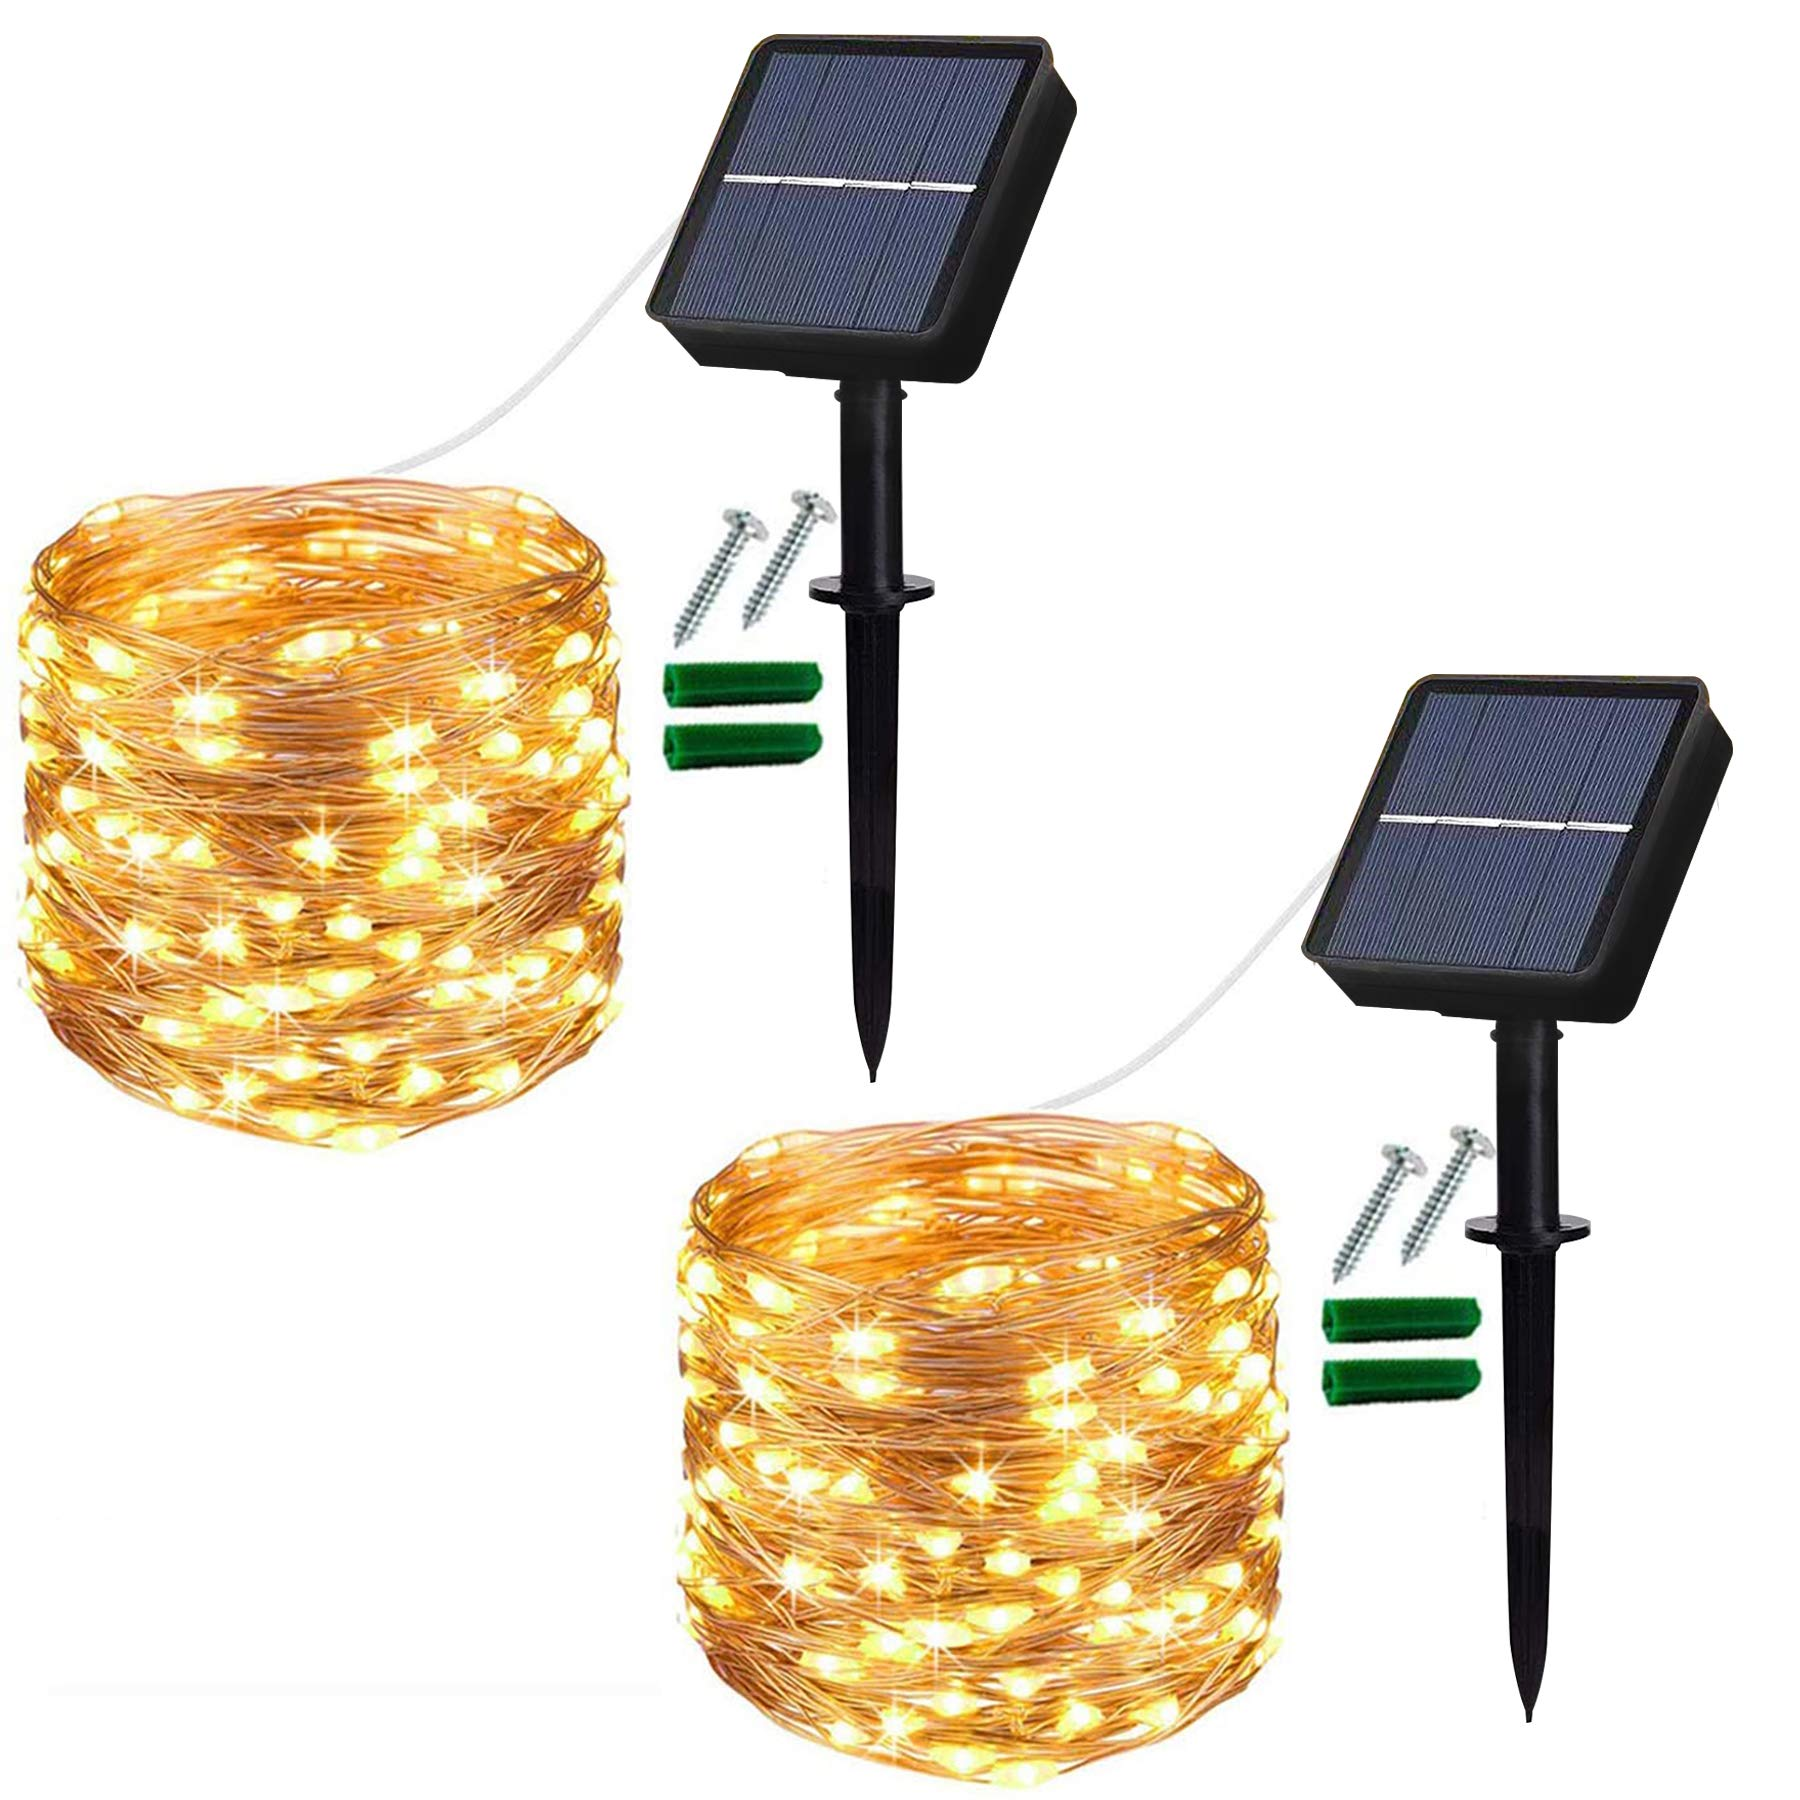 Solar String Lights Outdoor, 2 Pack 120 LED Solar Garden Lights Waterproof 12M/40Ft 8 Modes Indoor/Outdoor Fairy Lights Copper Wire Decorative Lighting for Patio, Yard, Party, Wedding (Warm White) [Energy Class A+++]